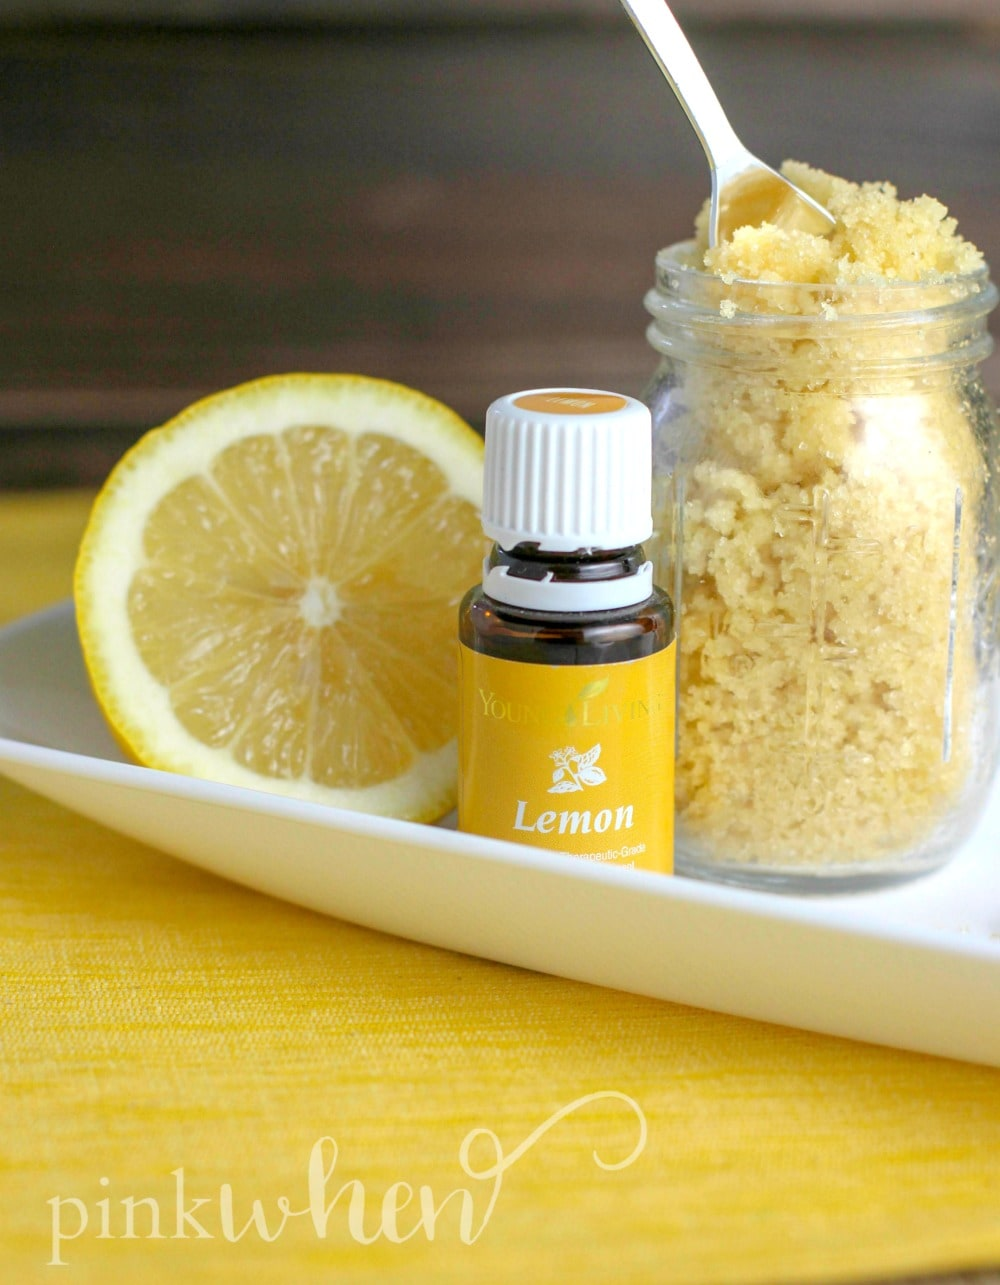 This lemon cake sugar scrub recipe is going to make your skin feel and smell like heaven.